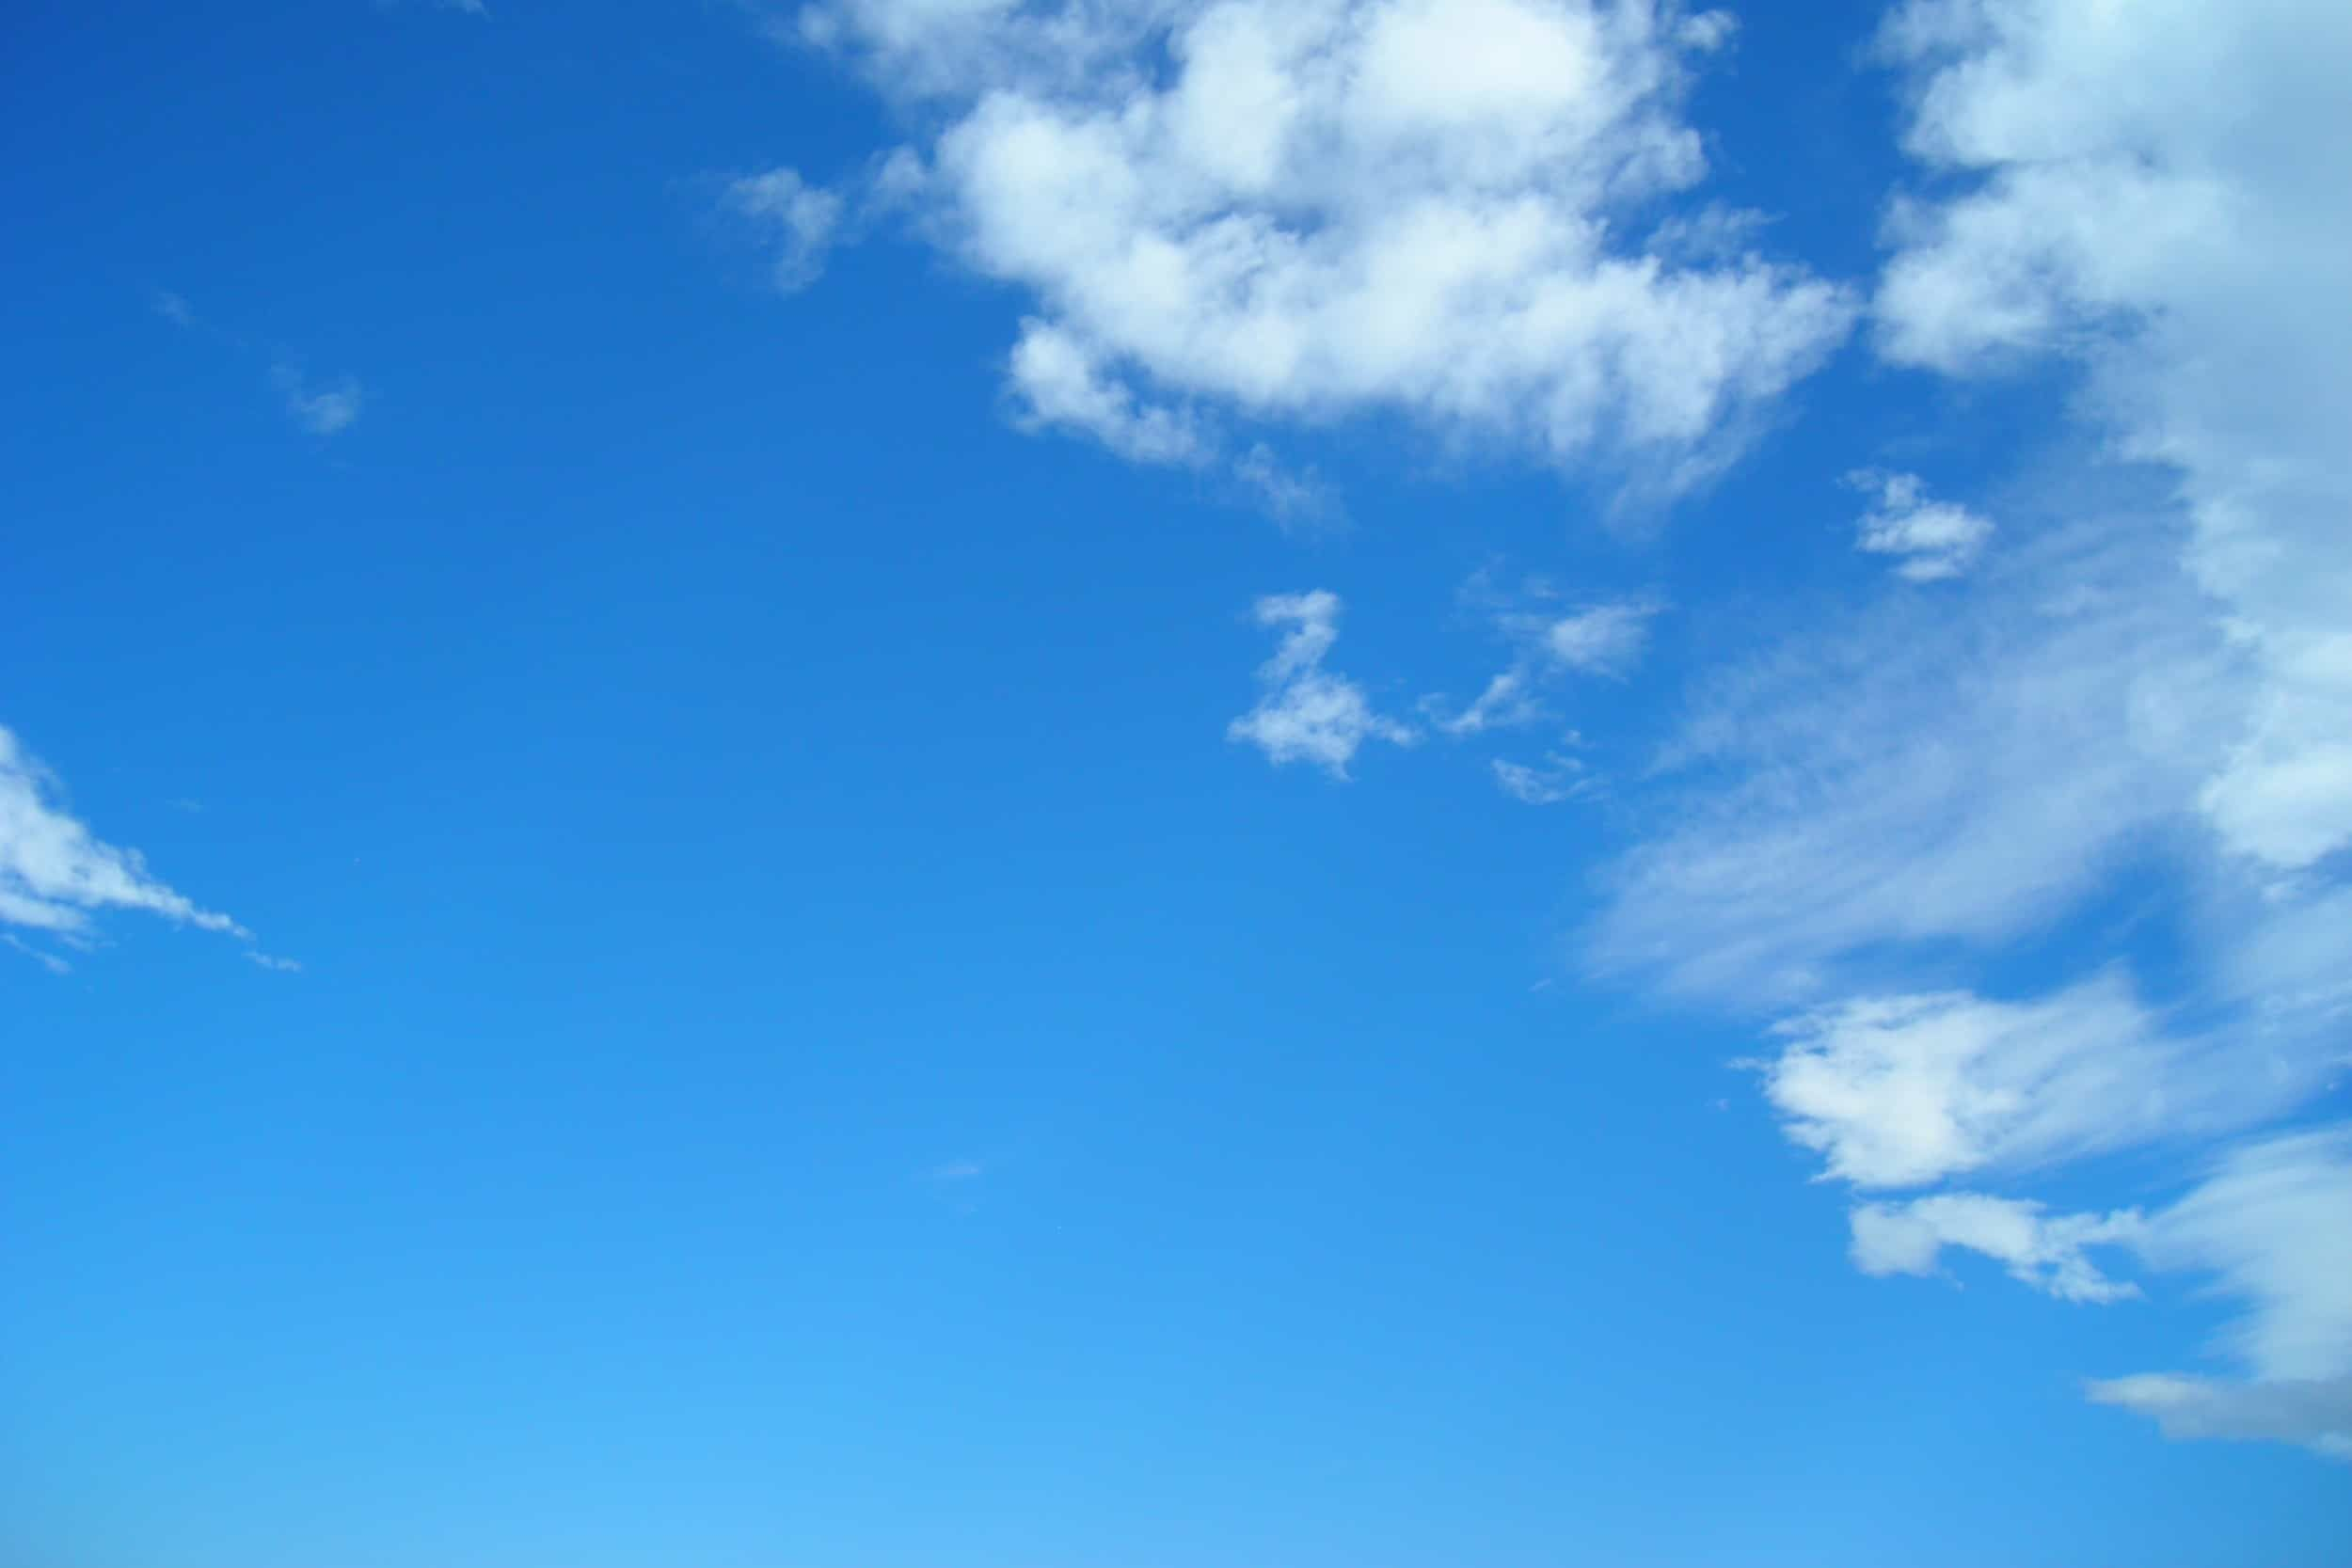 Azul Blanca Cielo Naturaleza Nubes 1080p Wallpaper Hdwallpaper Desktop In 2020 Blue Sky Wallpaper Blue Sky Clouds